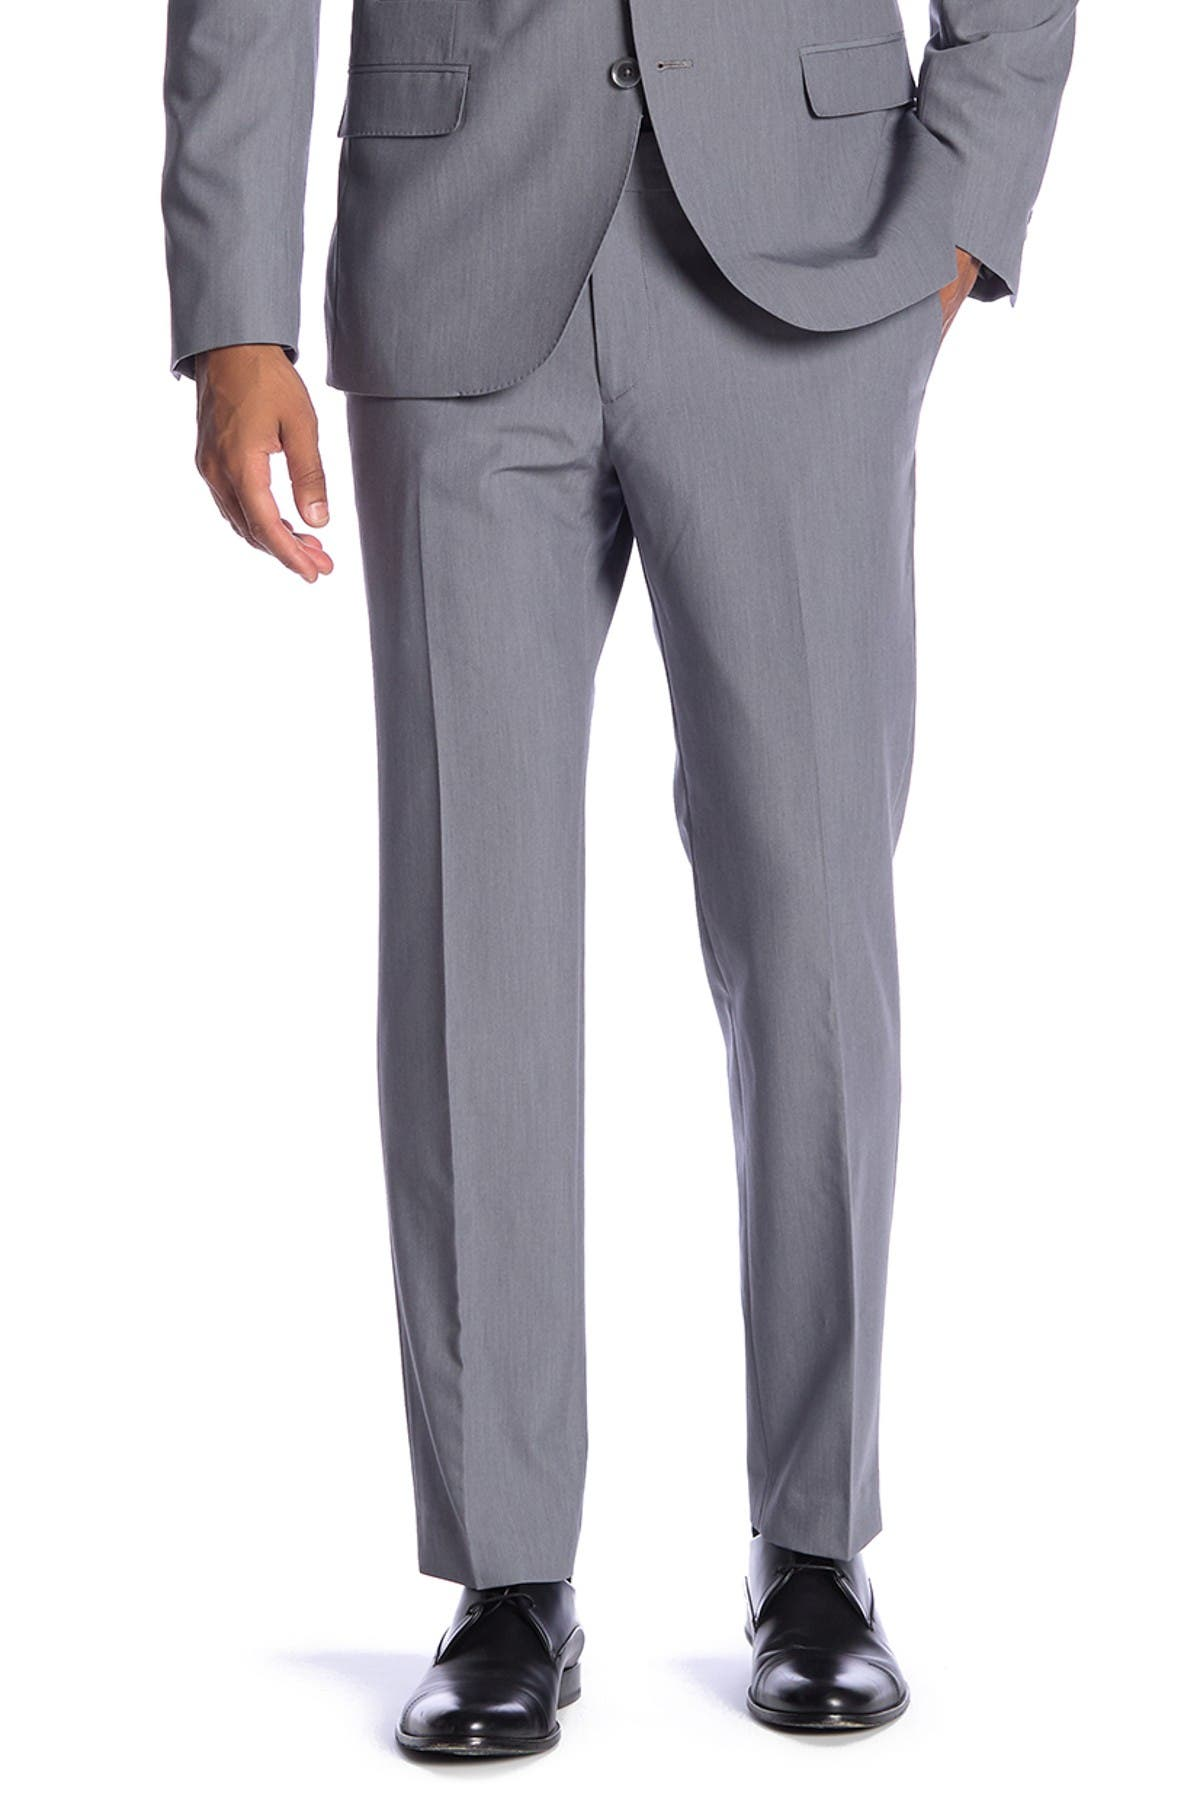 "Image of SAVILE ROW CO Essex Grey Slim Fit Bi-Stretch Suit Separate Pants - 30-34"" Inseam"